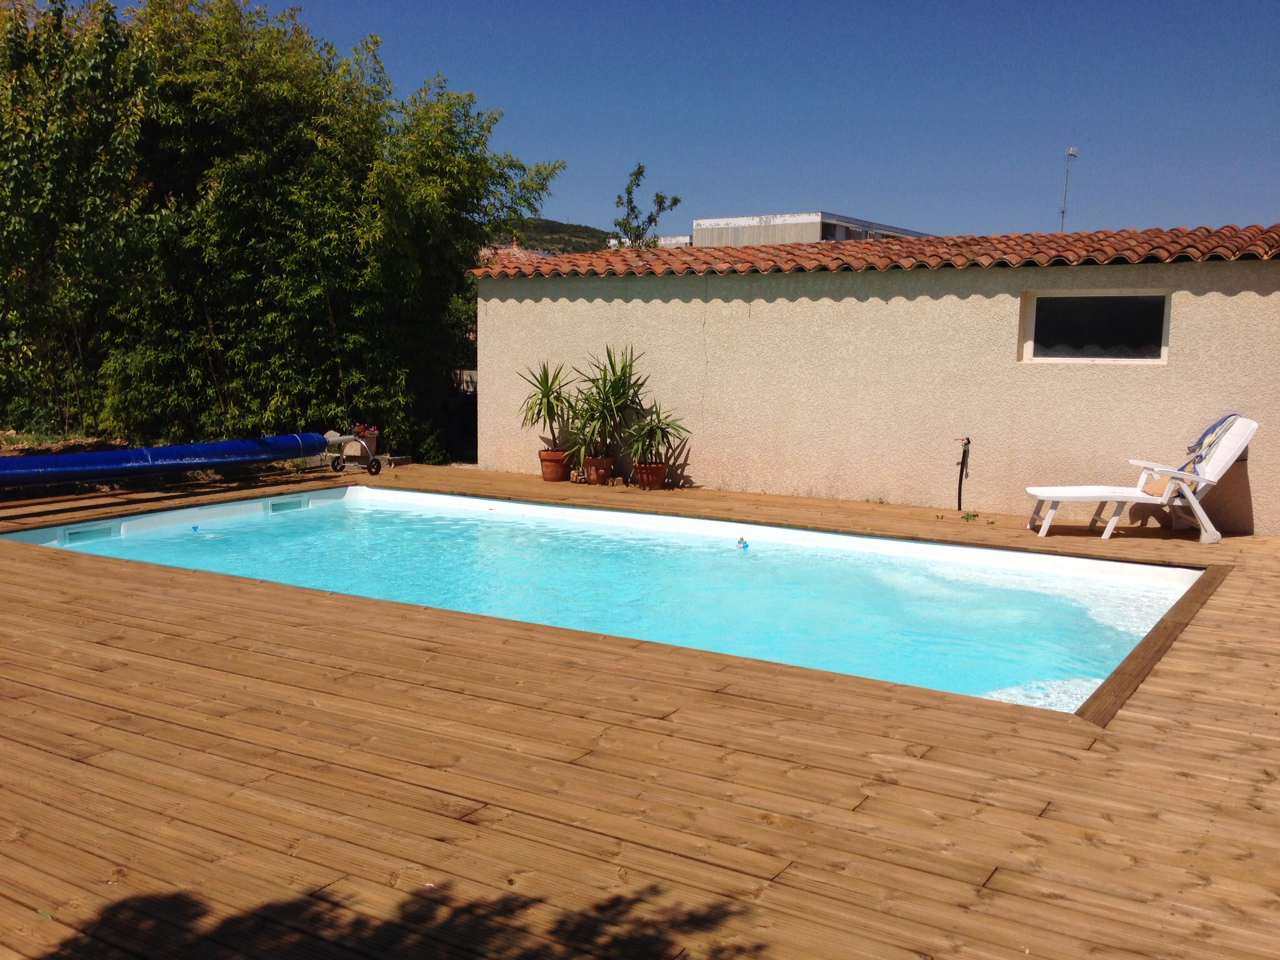 Groupe filtration piscine desjoyaux id e for Specialiste piscine